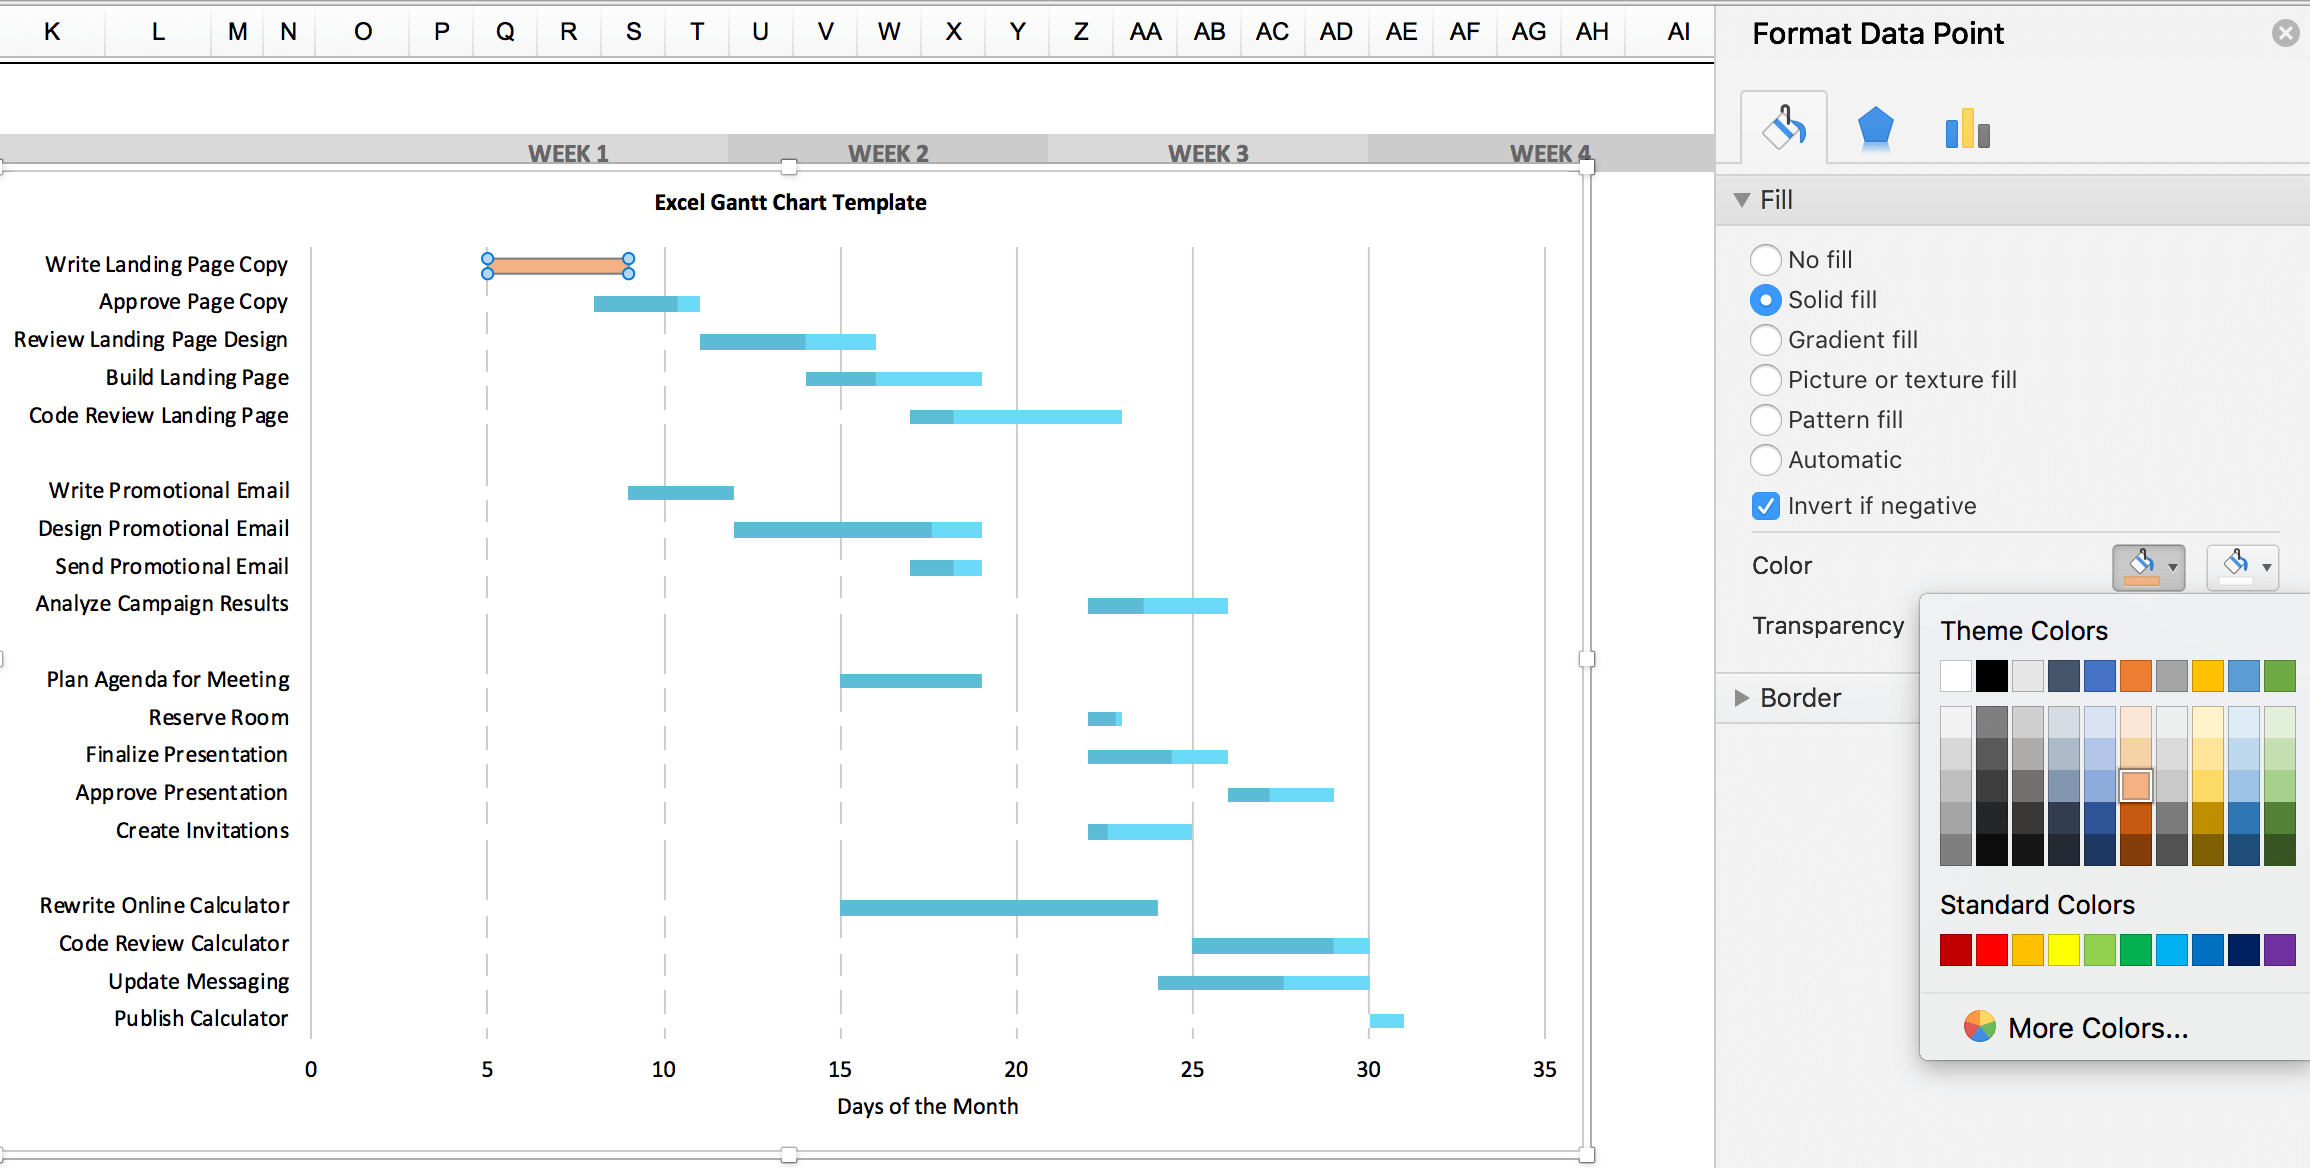 Free Gantt Chart Excel Template: Download Now | Teamgantt With Excel Spreadsheet Gantt Chart Template